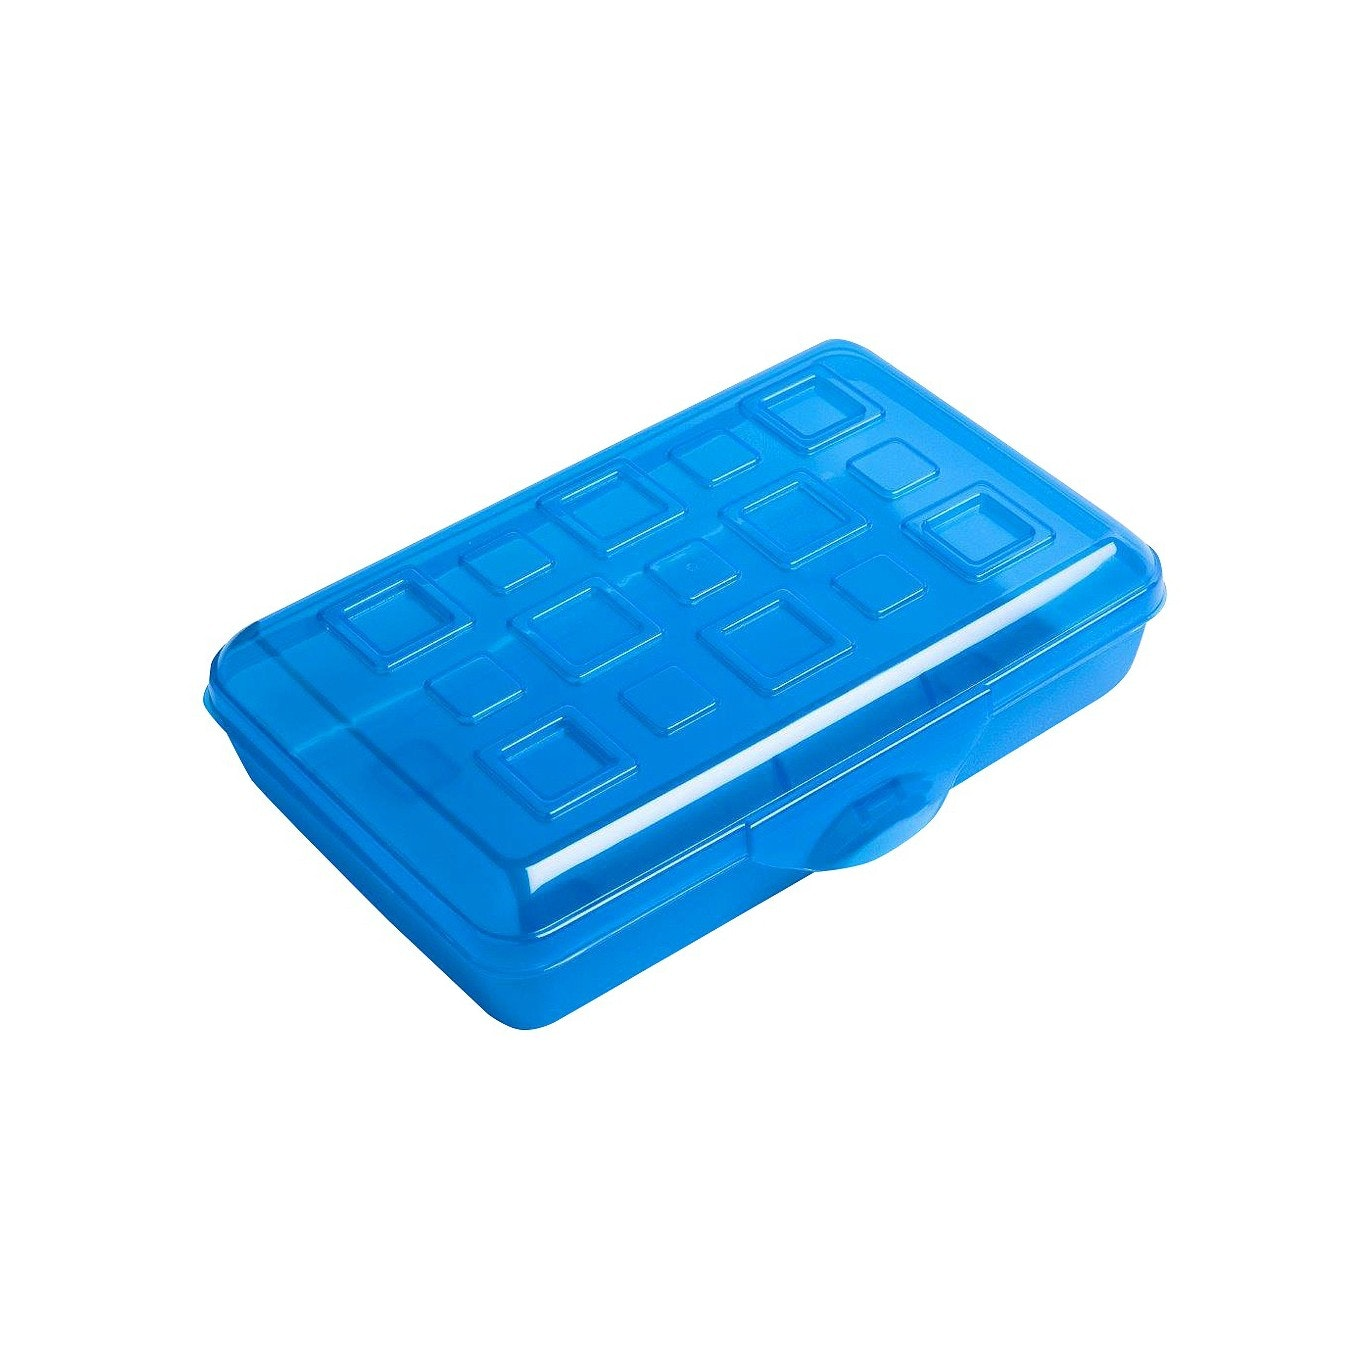 This simple, practicial pencil box